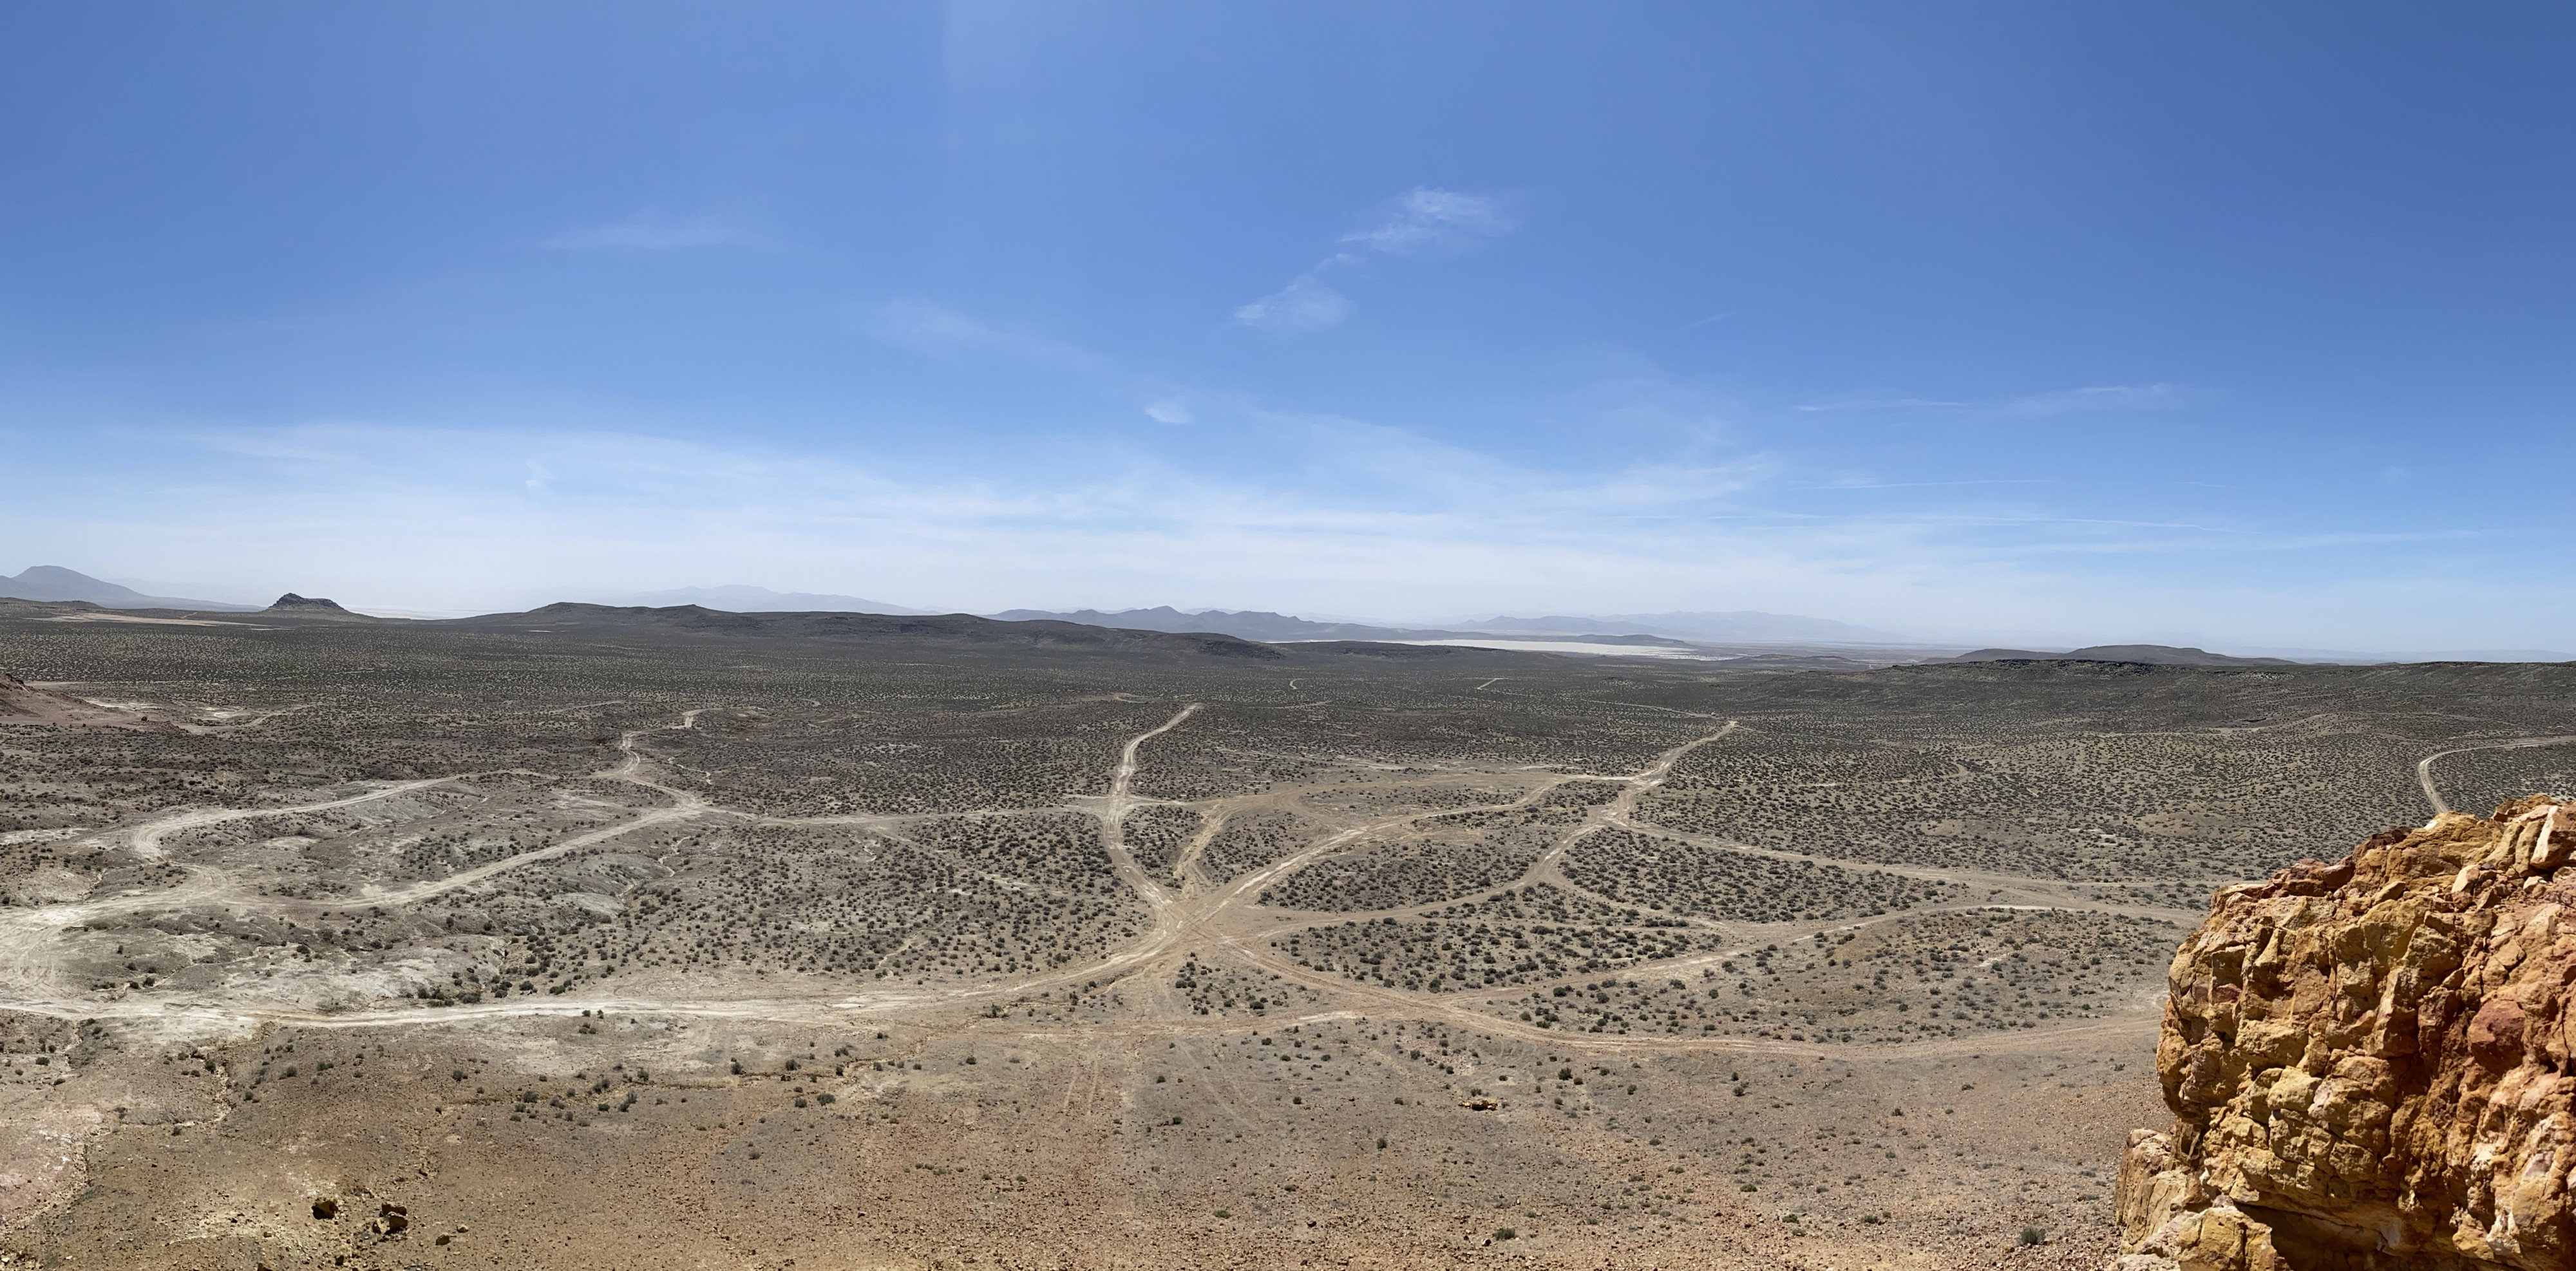 Photo of a desert landscape taken from the peak of a mountain.